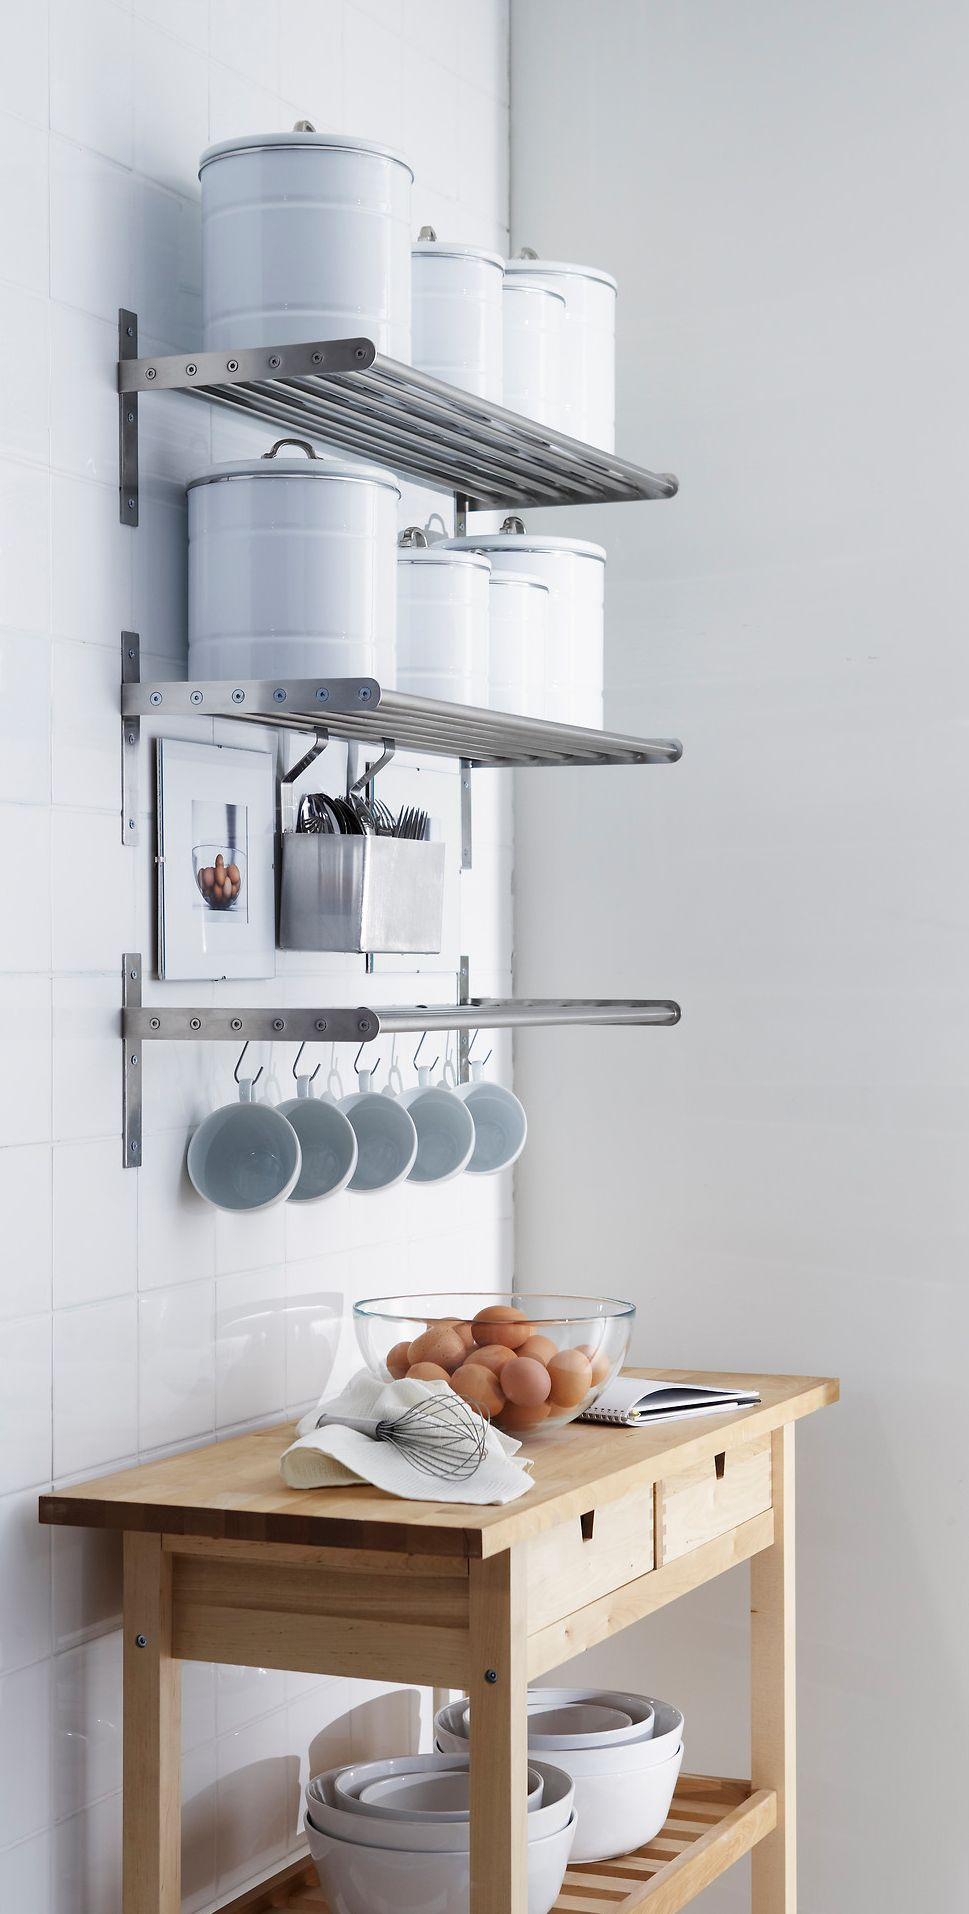 65 ingenious kitchen organization tips and storage ideas wall storage workwithnaturefo